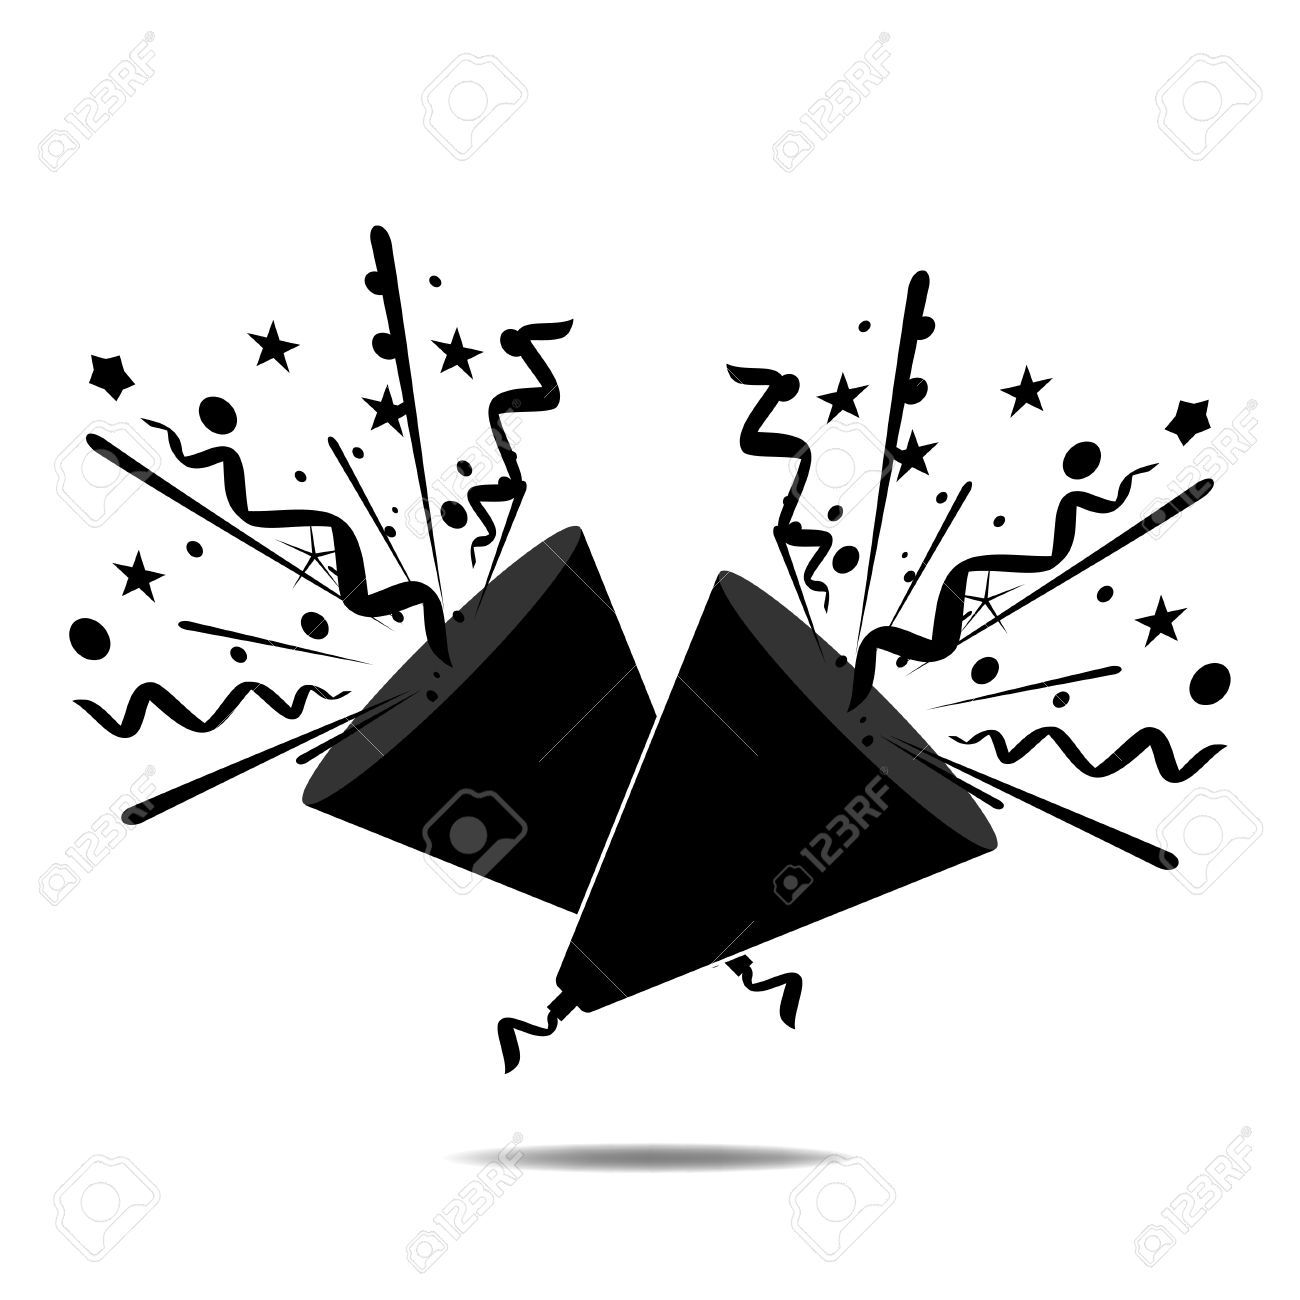 Poppers clipart black and white vector download free clipart party poppers - Google Search | icon | Party ... vector download